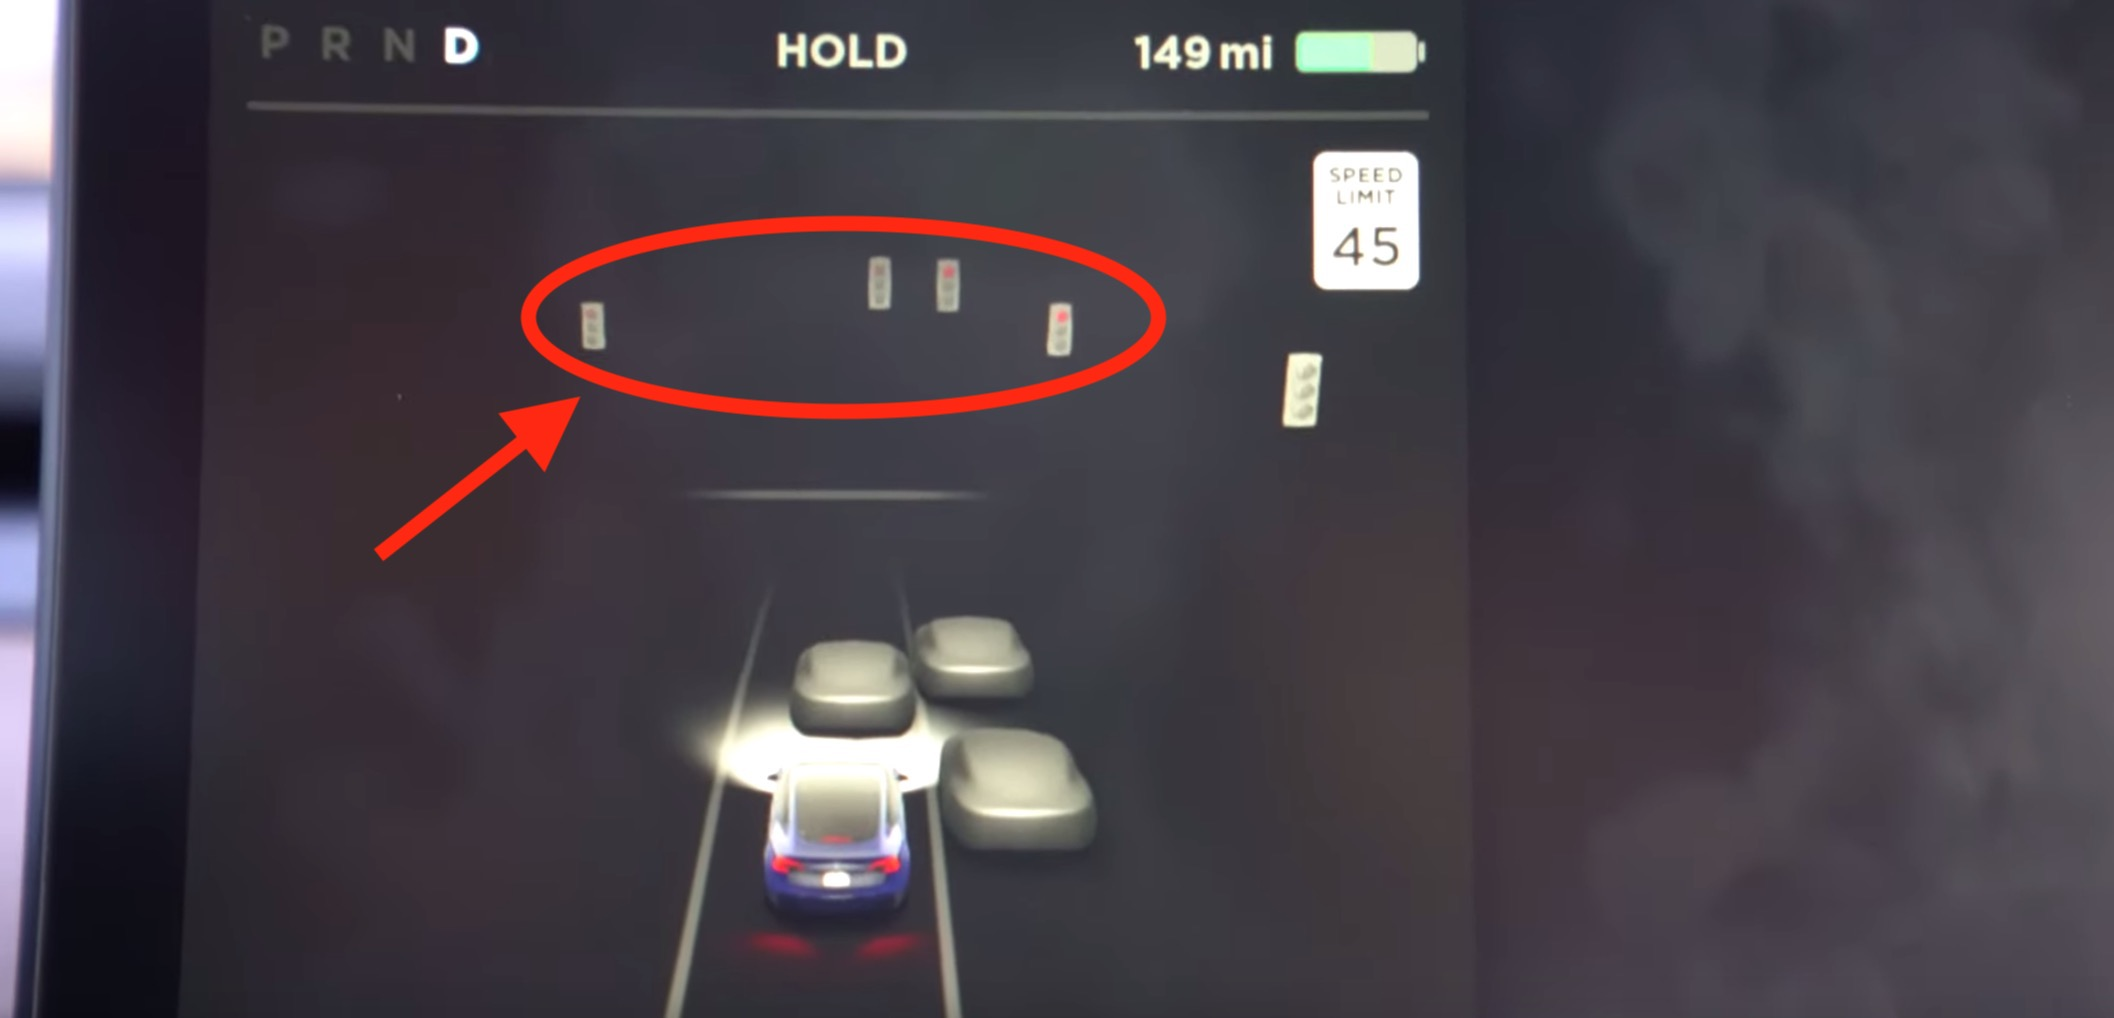 Tesla releases new software update with improved regen braking, new Track Mode, and more - Electrek